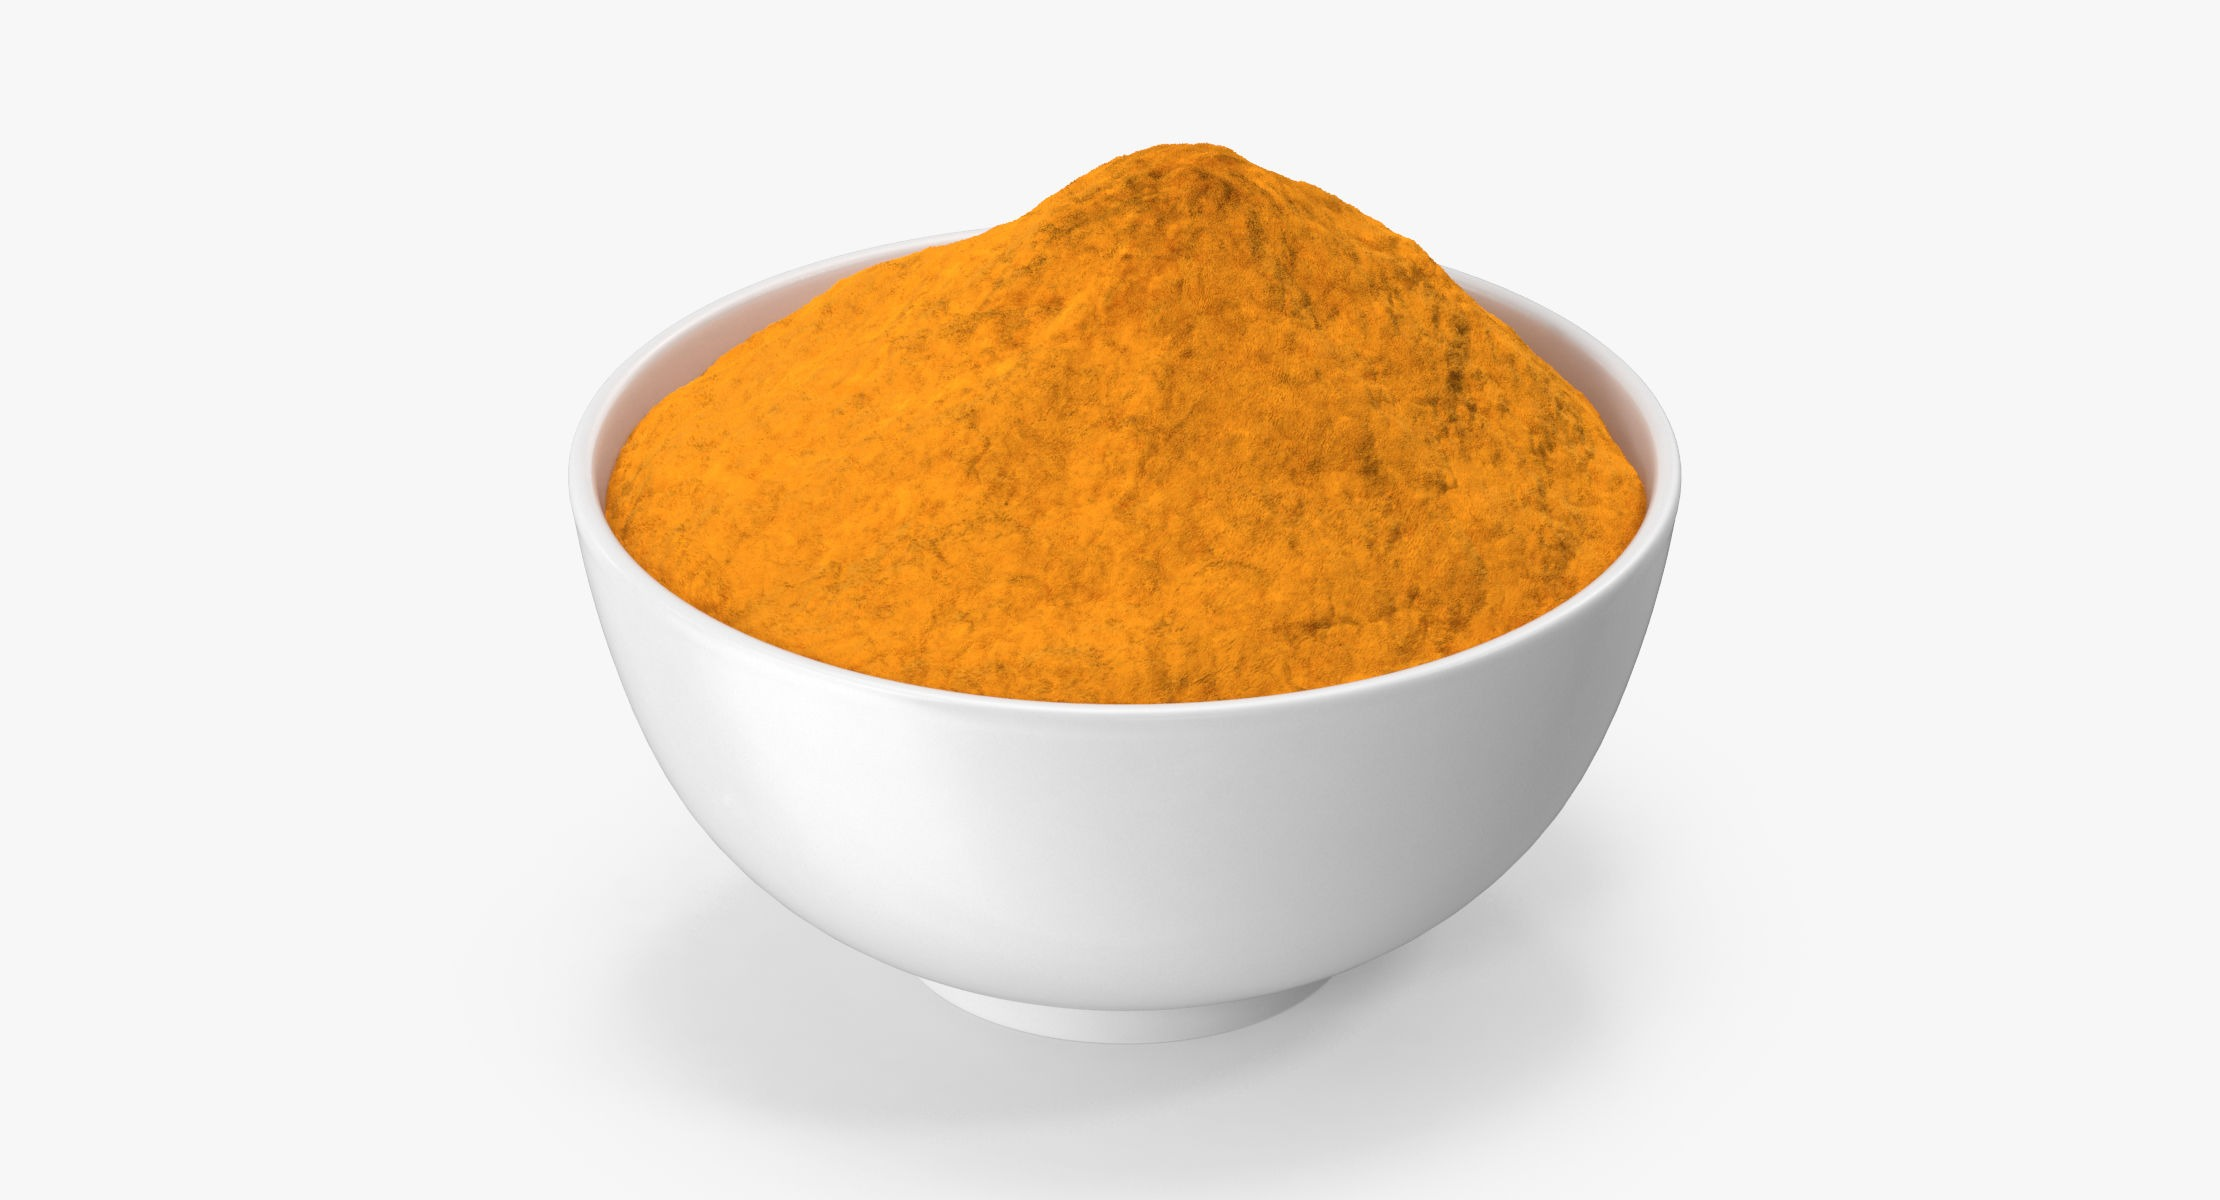 Bowl of Turmeric - reel 1